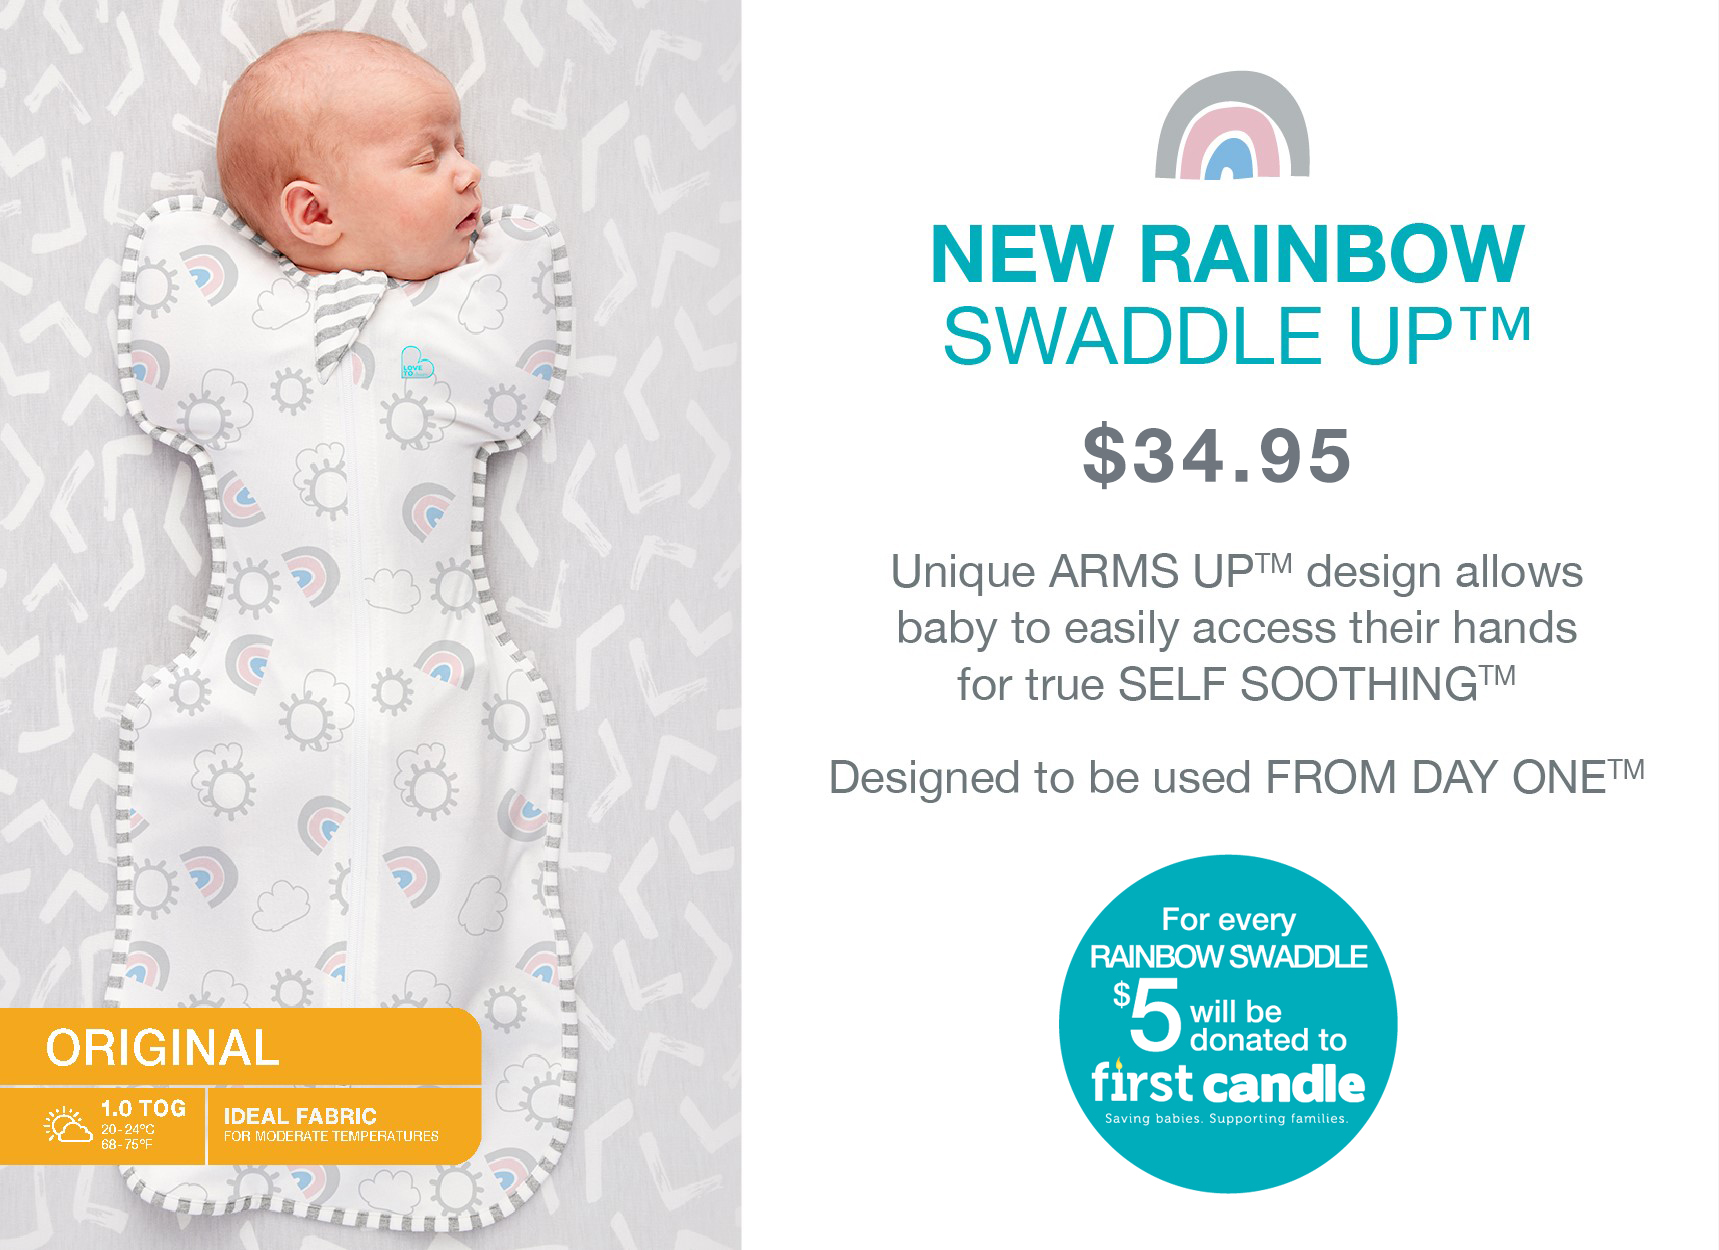 love-to-dream-swaddle-up-rainbow-first-candle.jpg